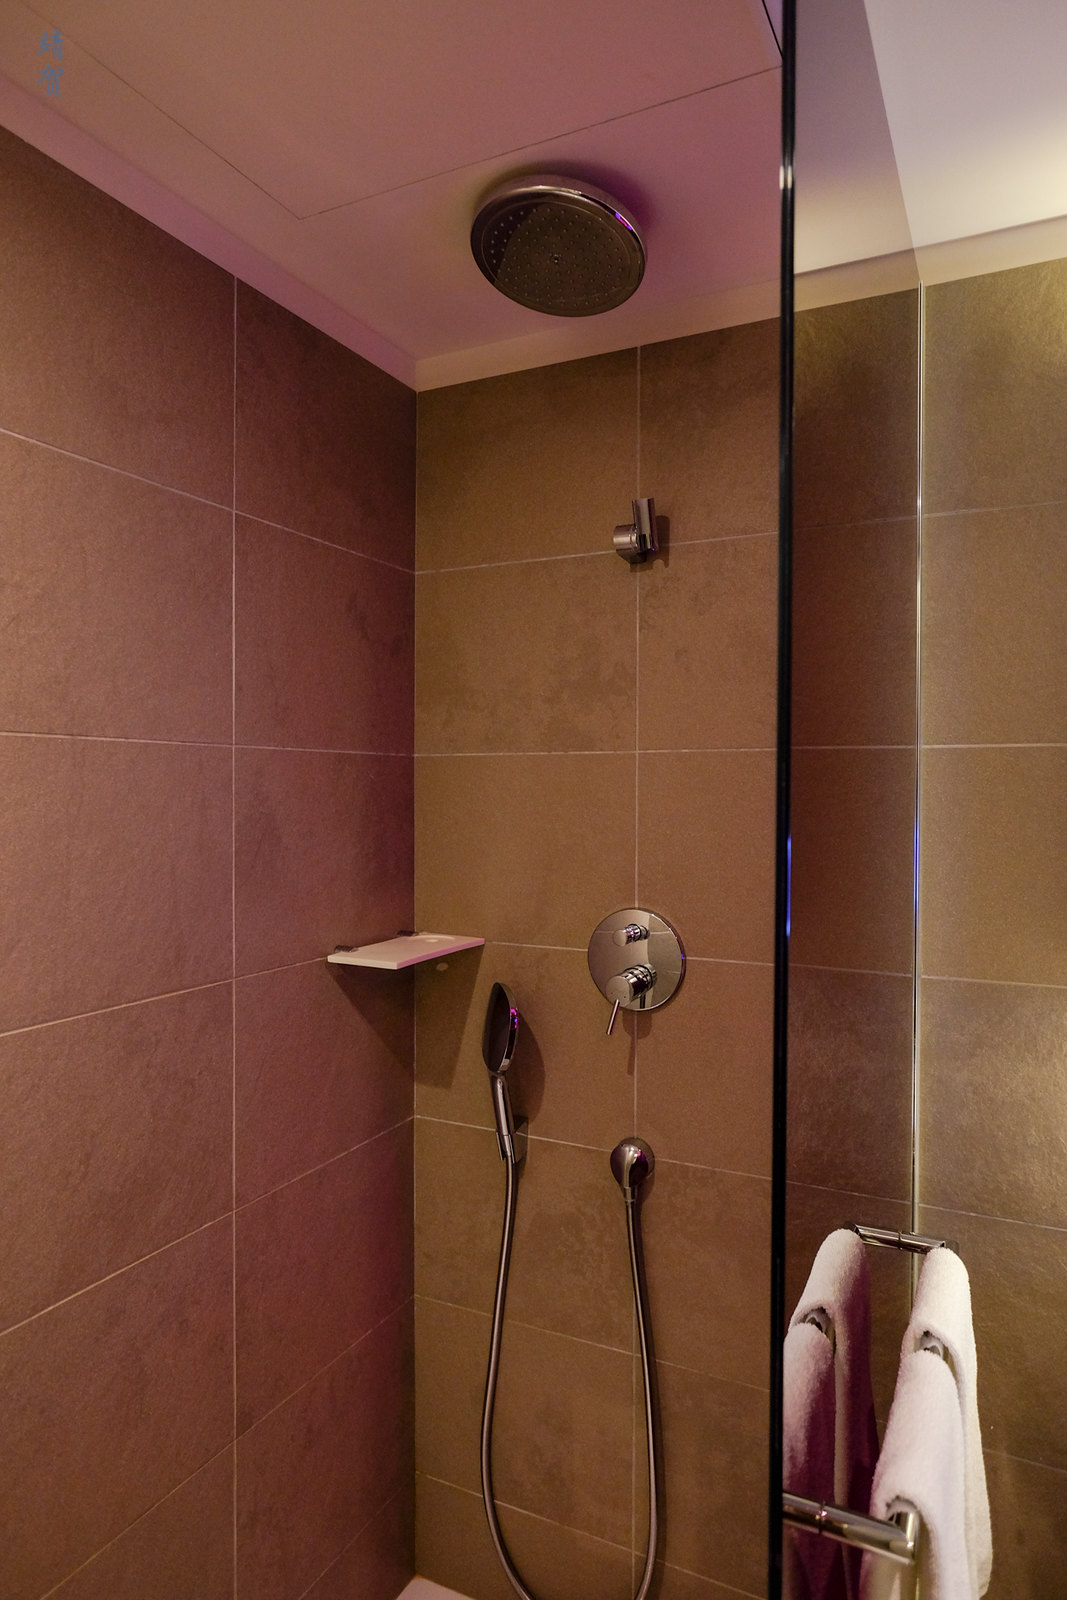 Shower space in the bathroom